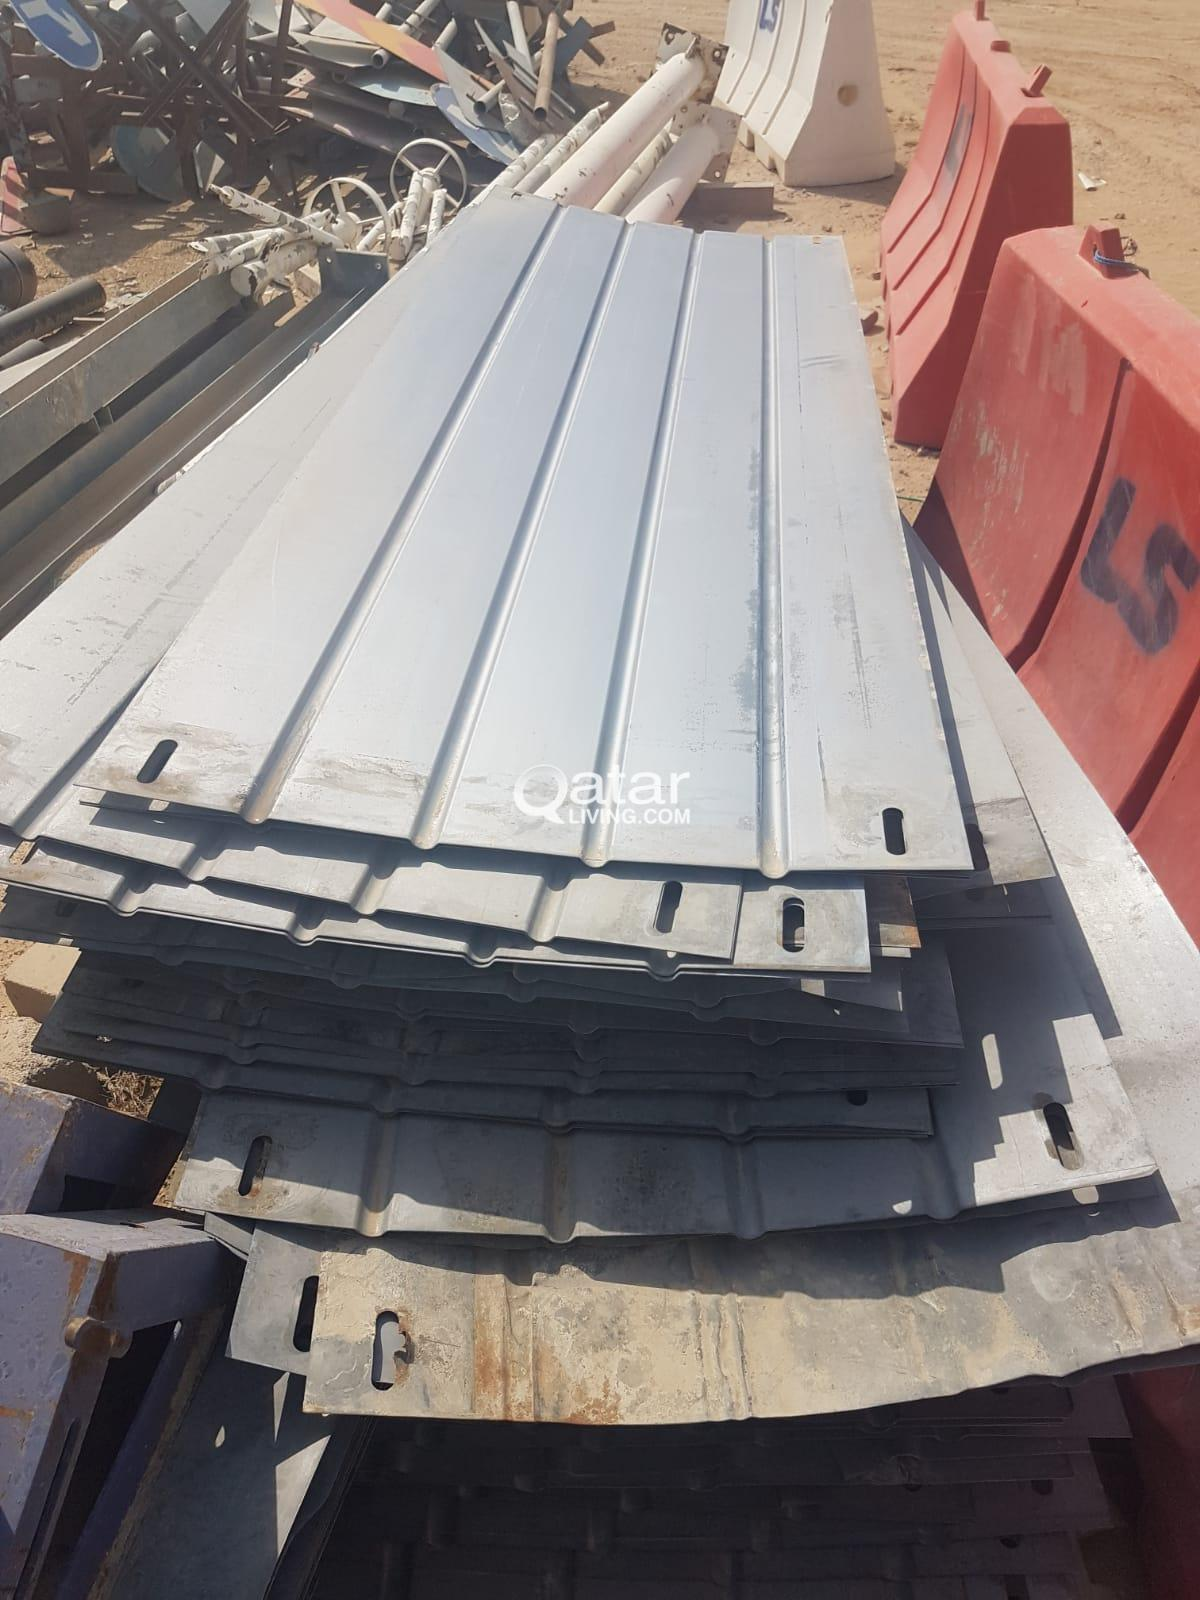 Steel Sheets Used For Sale Good Condition For Fencing Qatar Living